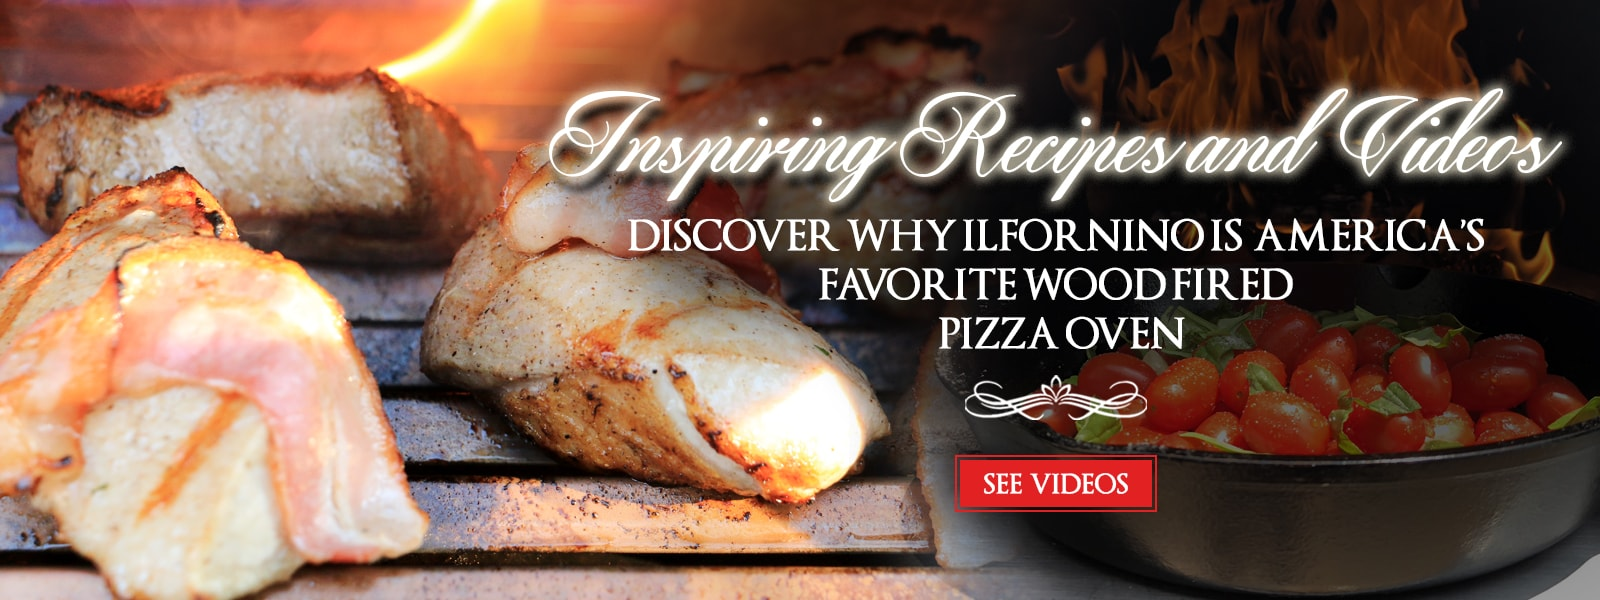 ilFornino Pizza Ovens Videos